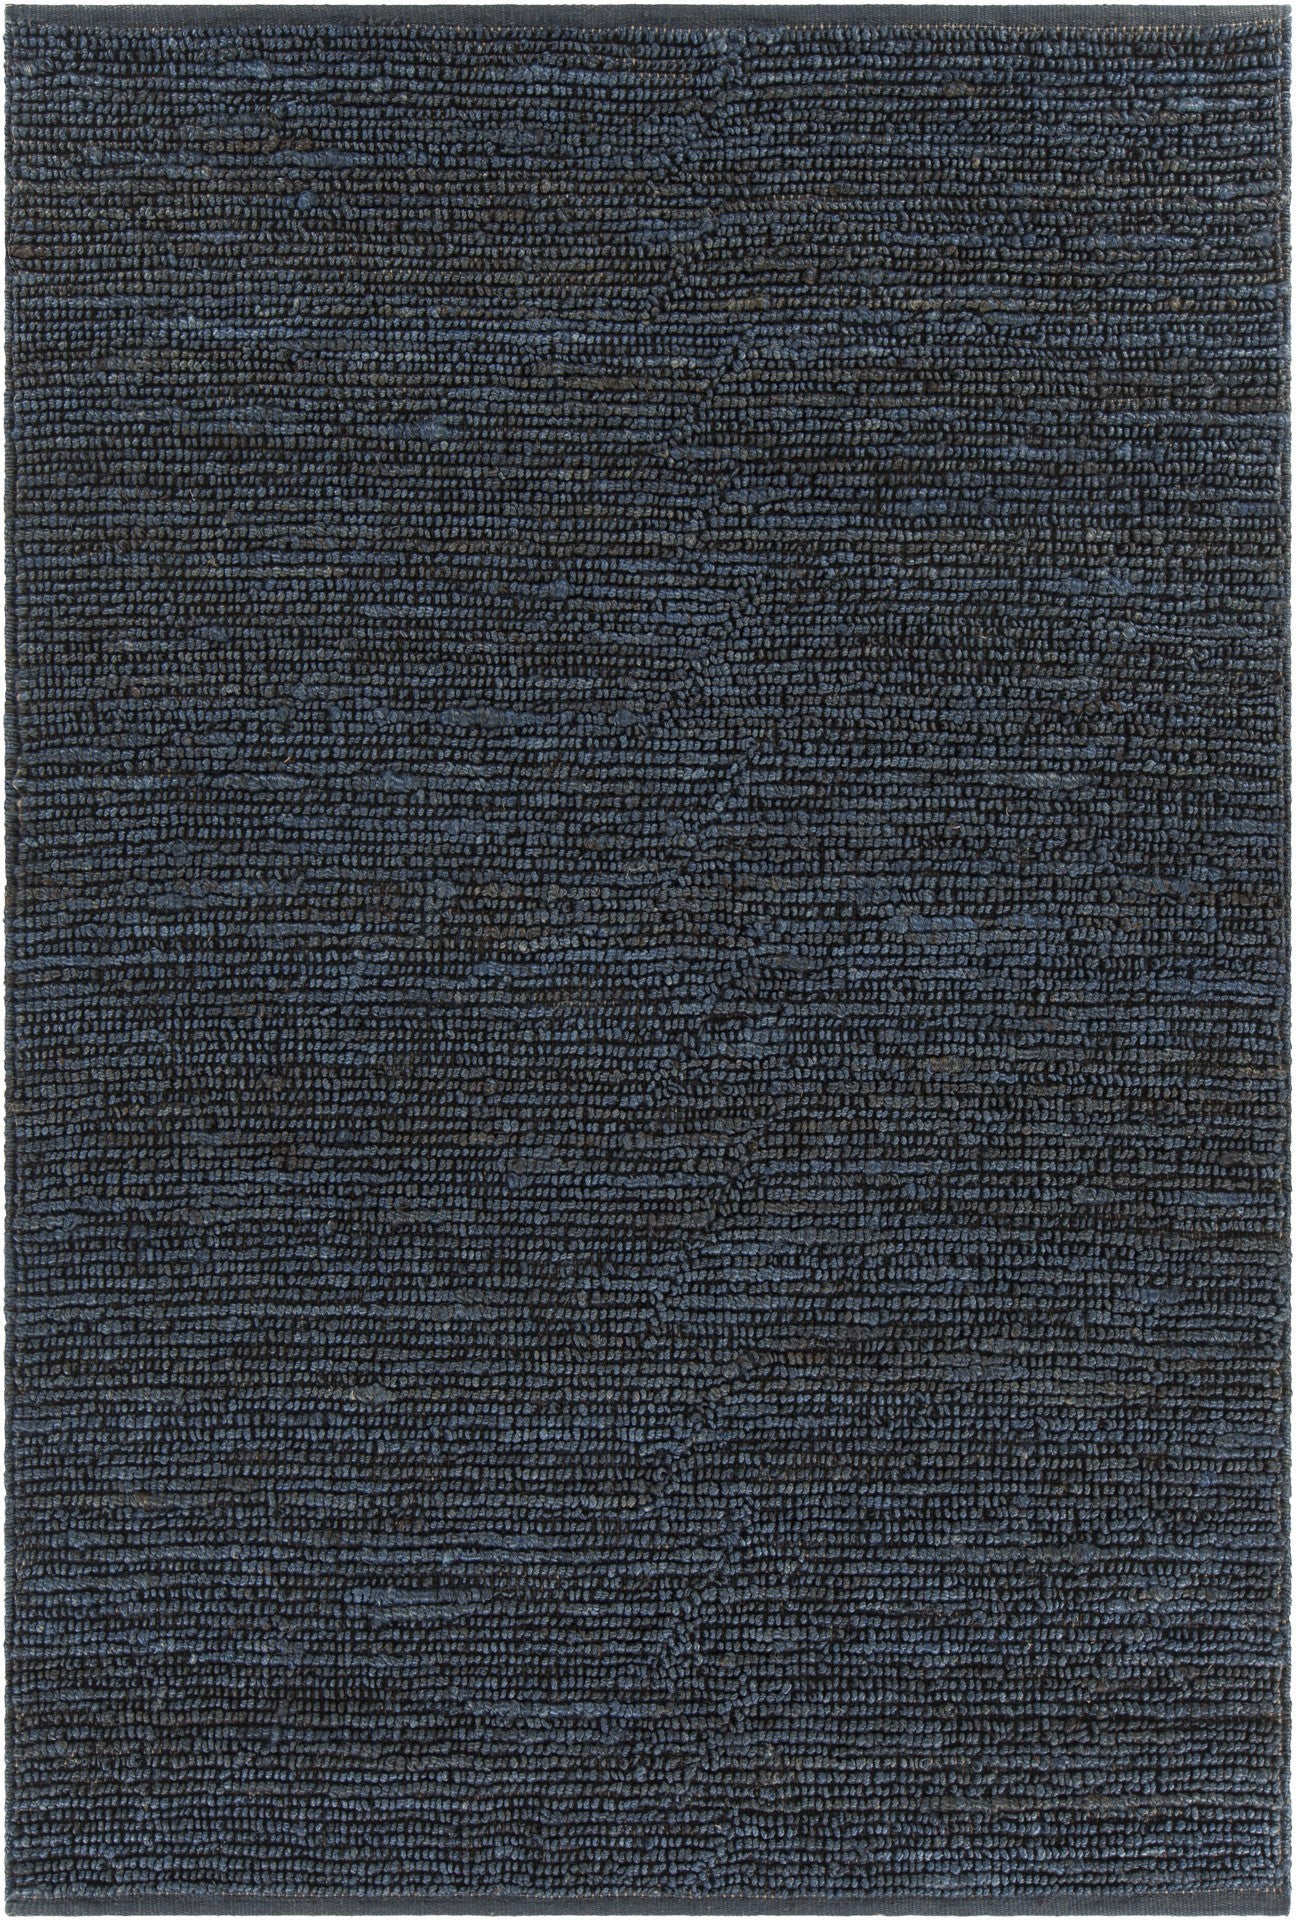 Chandra Arlene ARL-29903 Blue Area Rug main image